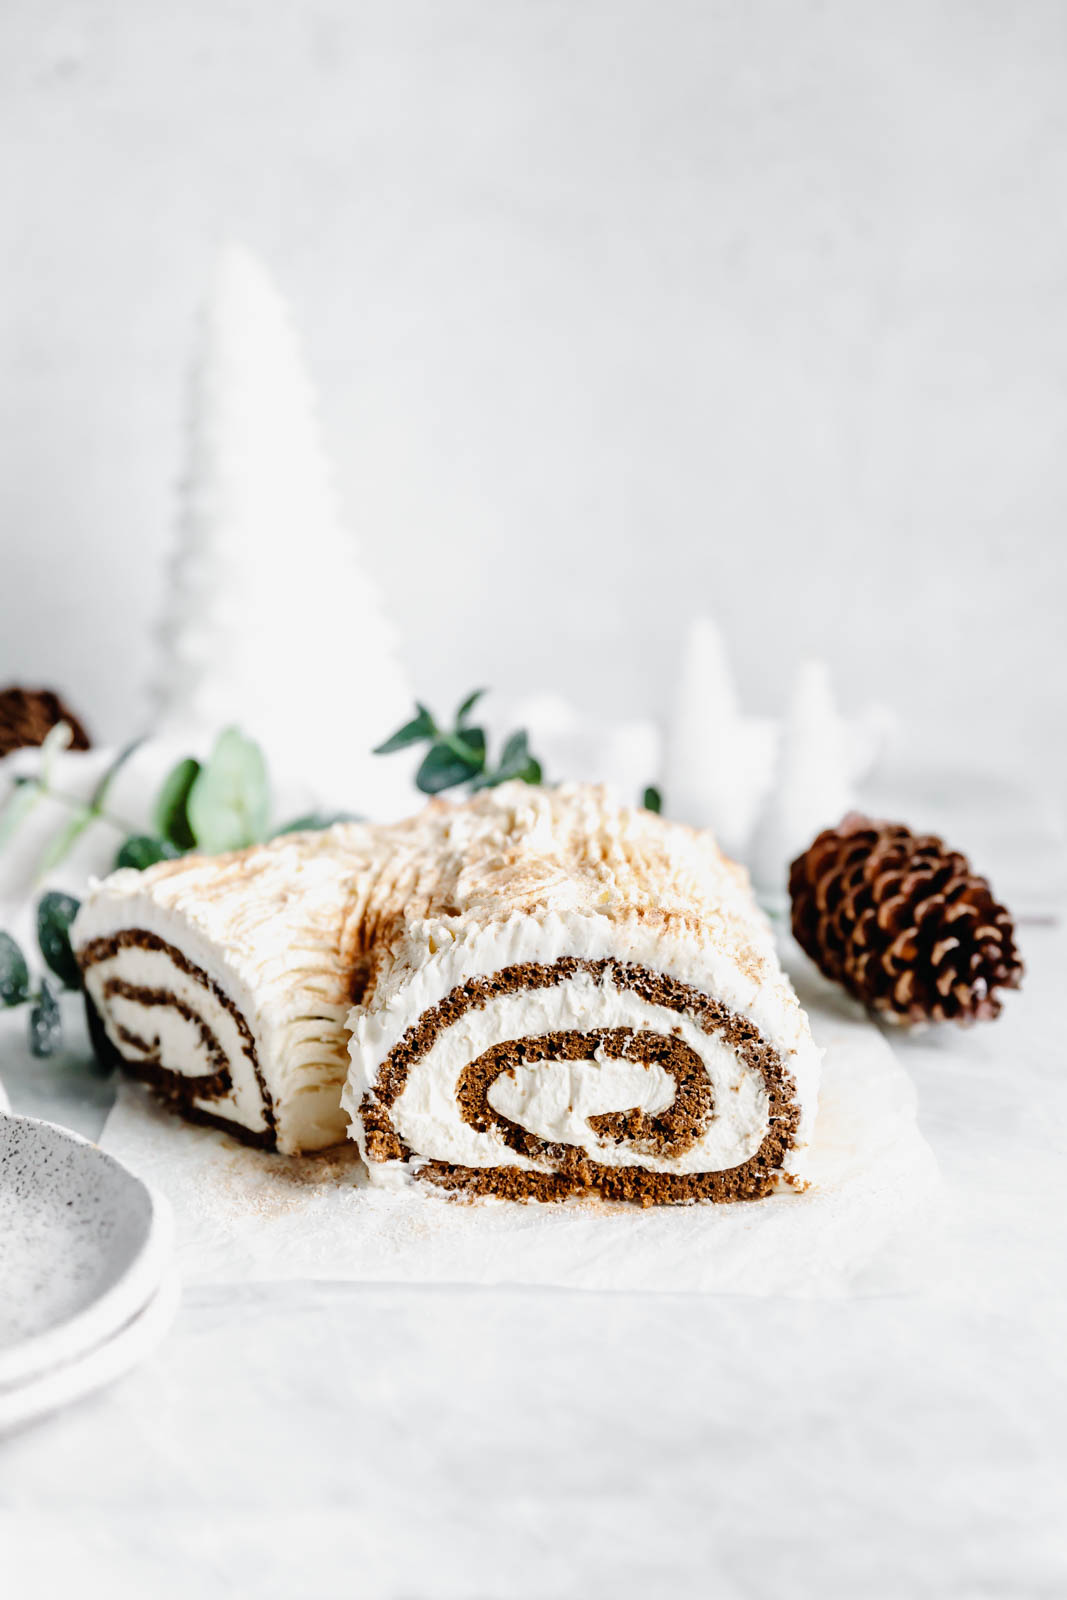 This festive White Chocolate Gingerbread Yule Log is a showstopper Christmas dessert. Made with white chocolate buttercream